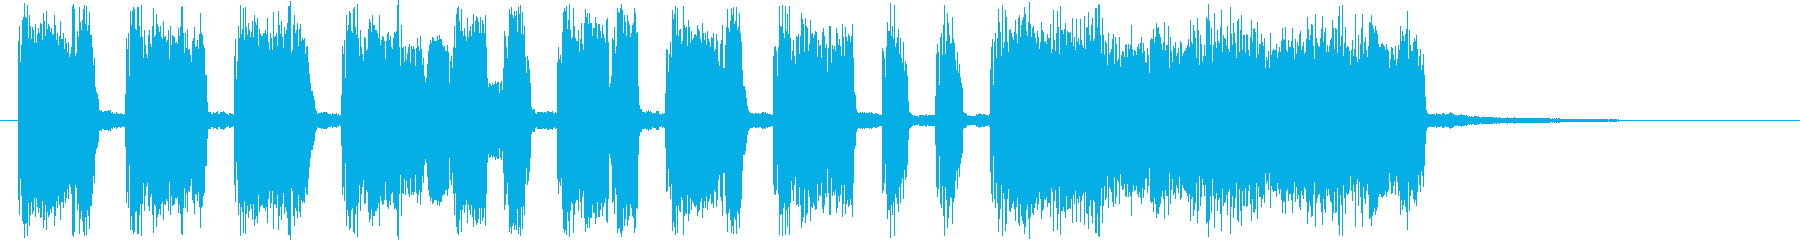 A short song useful for folklore and fairy tales's reproduced waveform